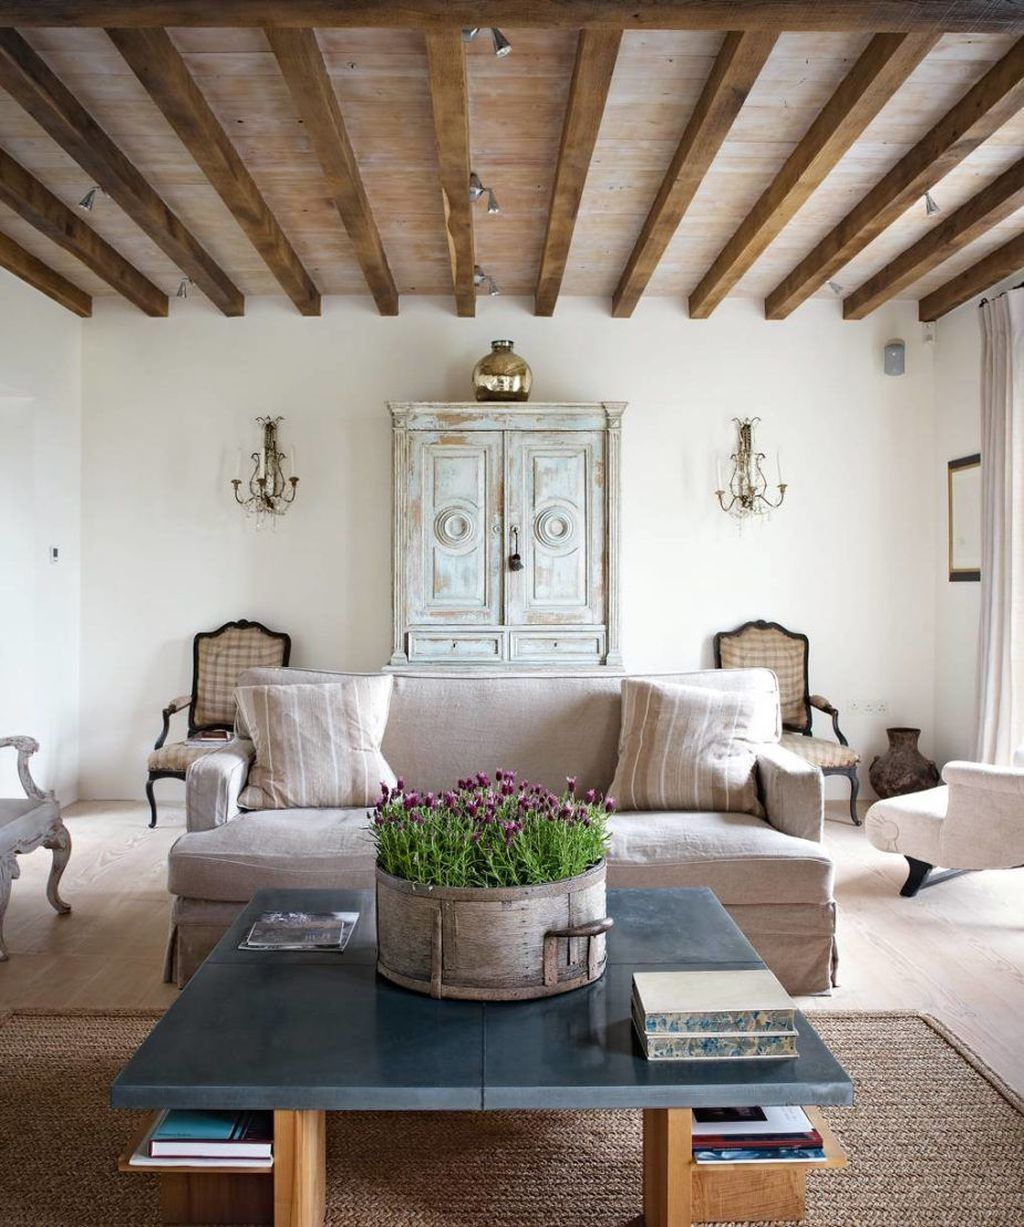 The Best Country Style Interior Design Ideas 20